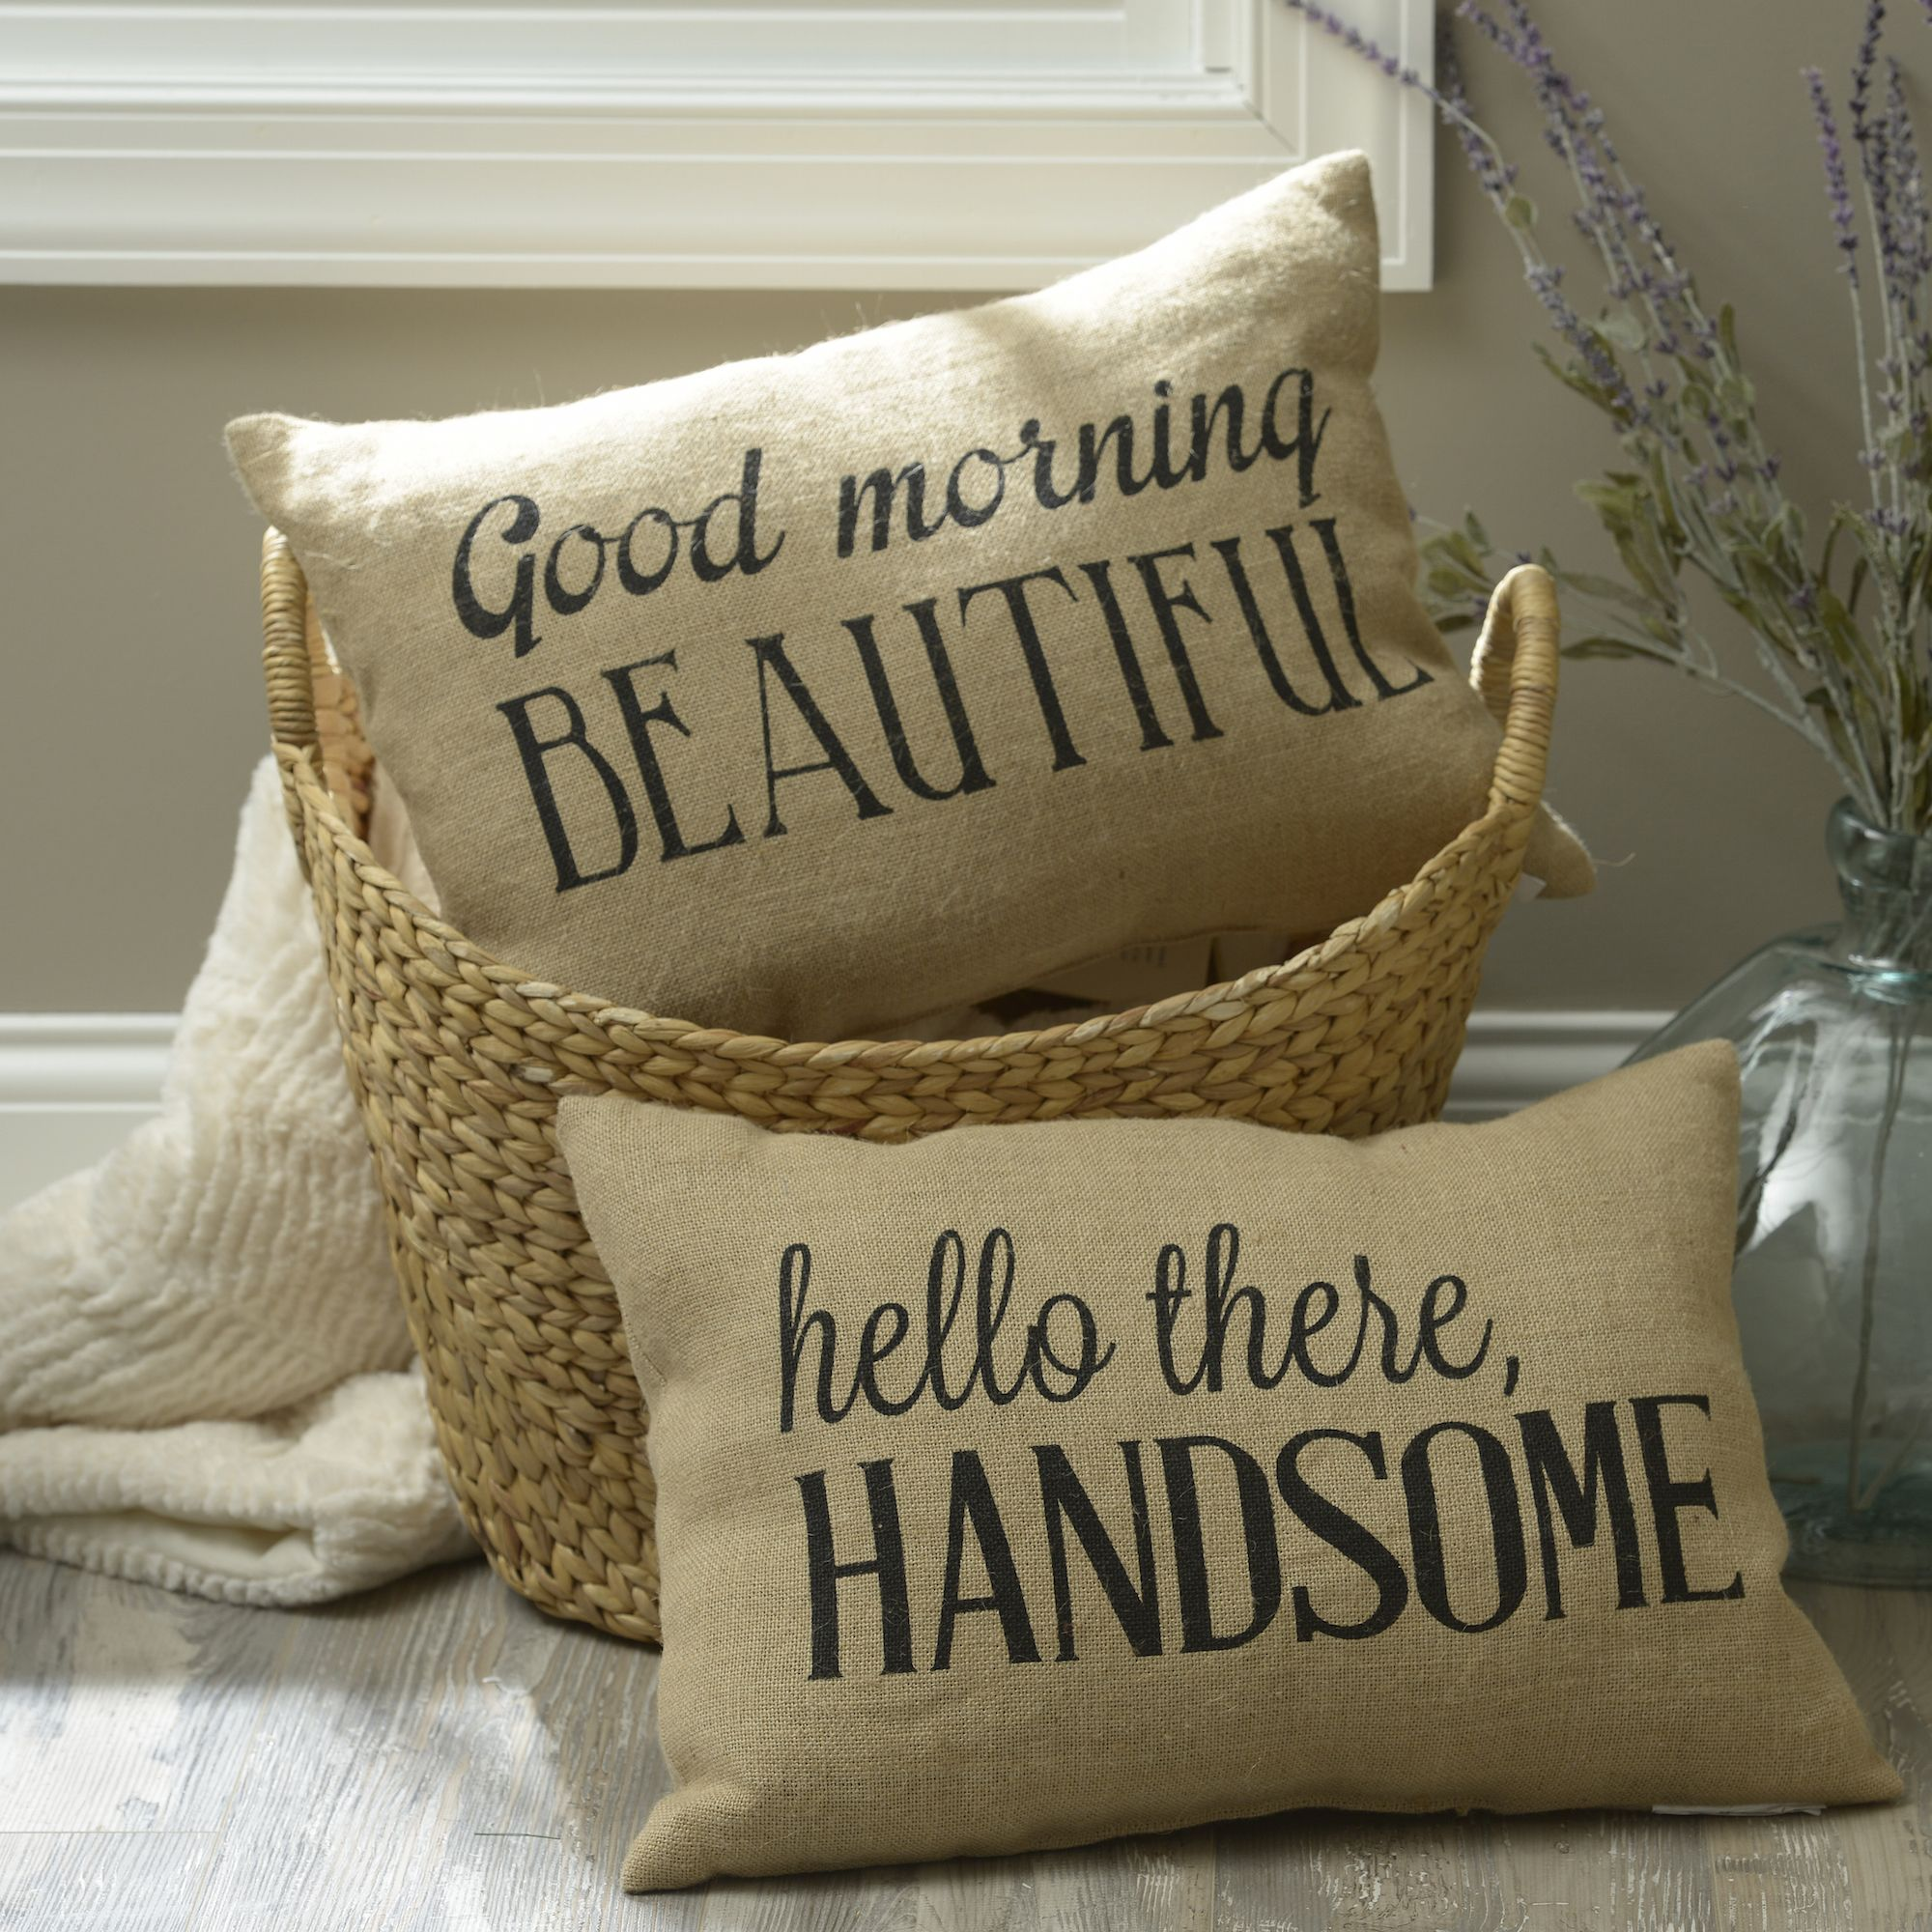 Kirkland S Burlap Pillows Beautiful Pillows Good Morning Beautiful